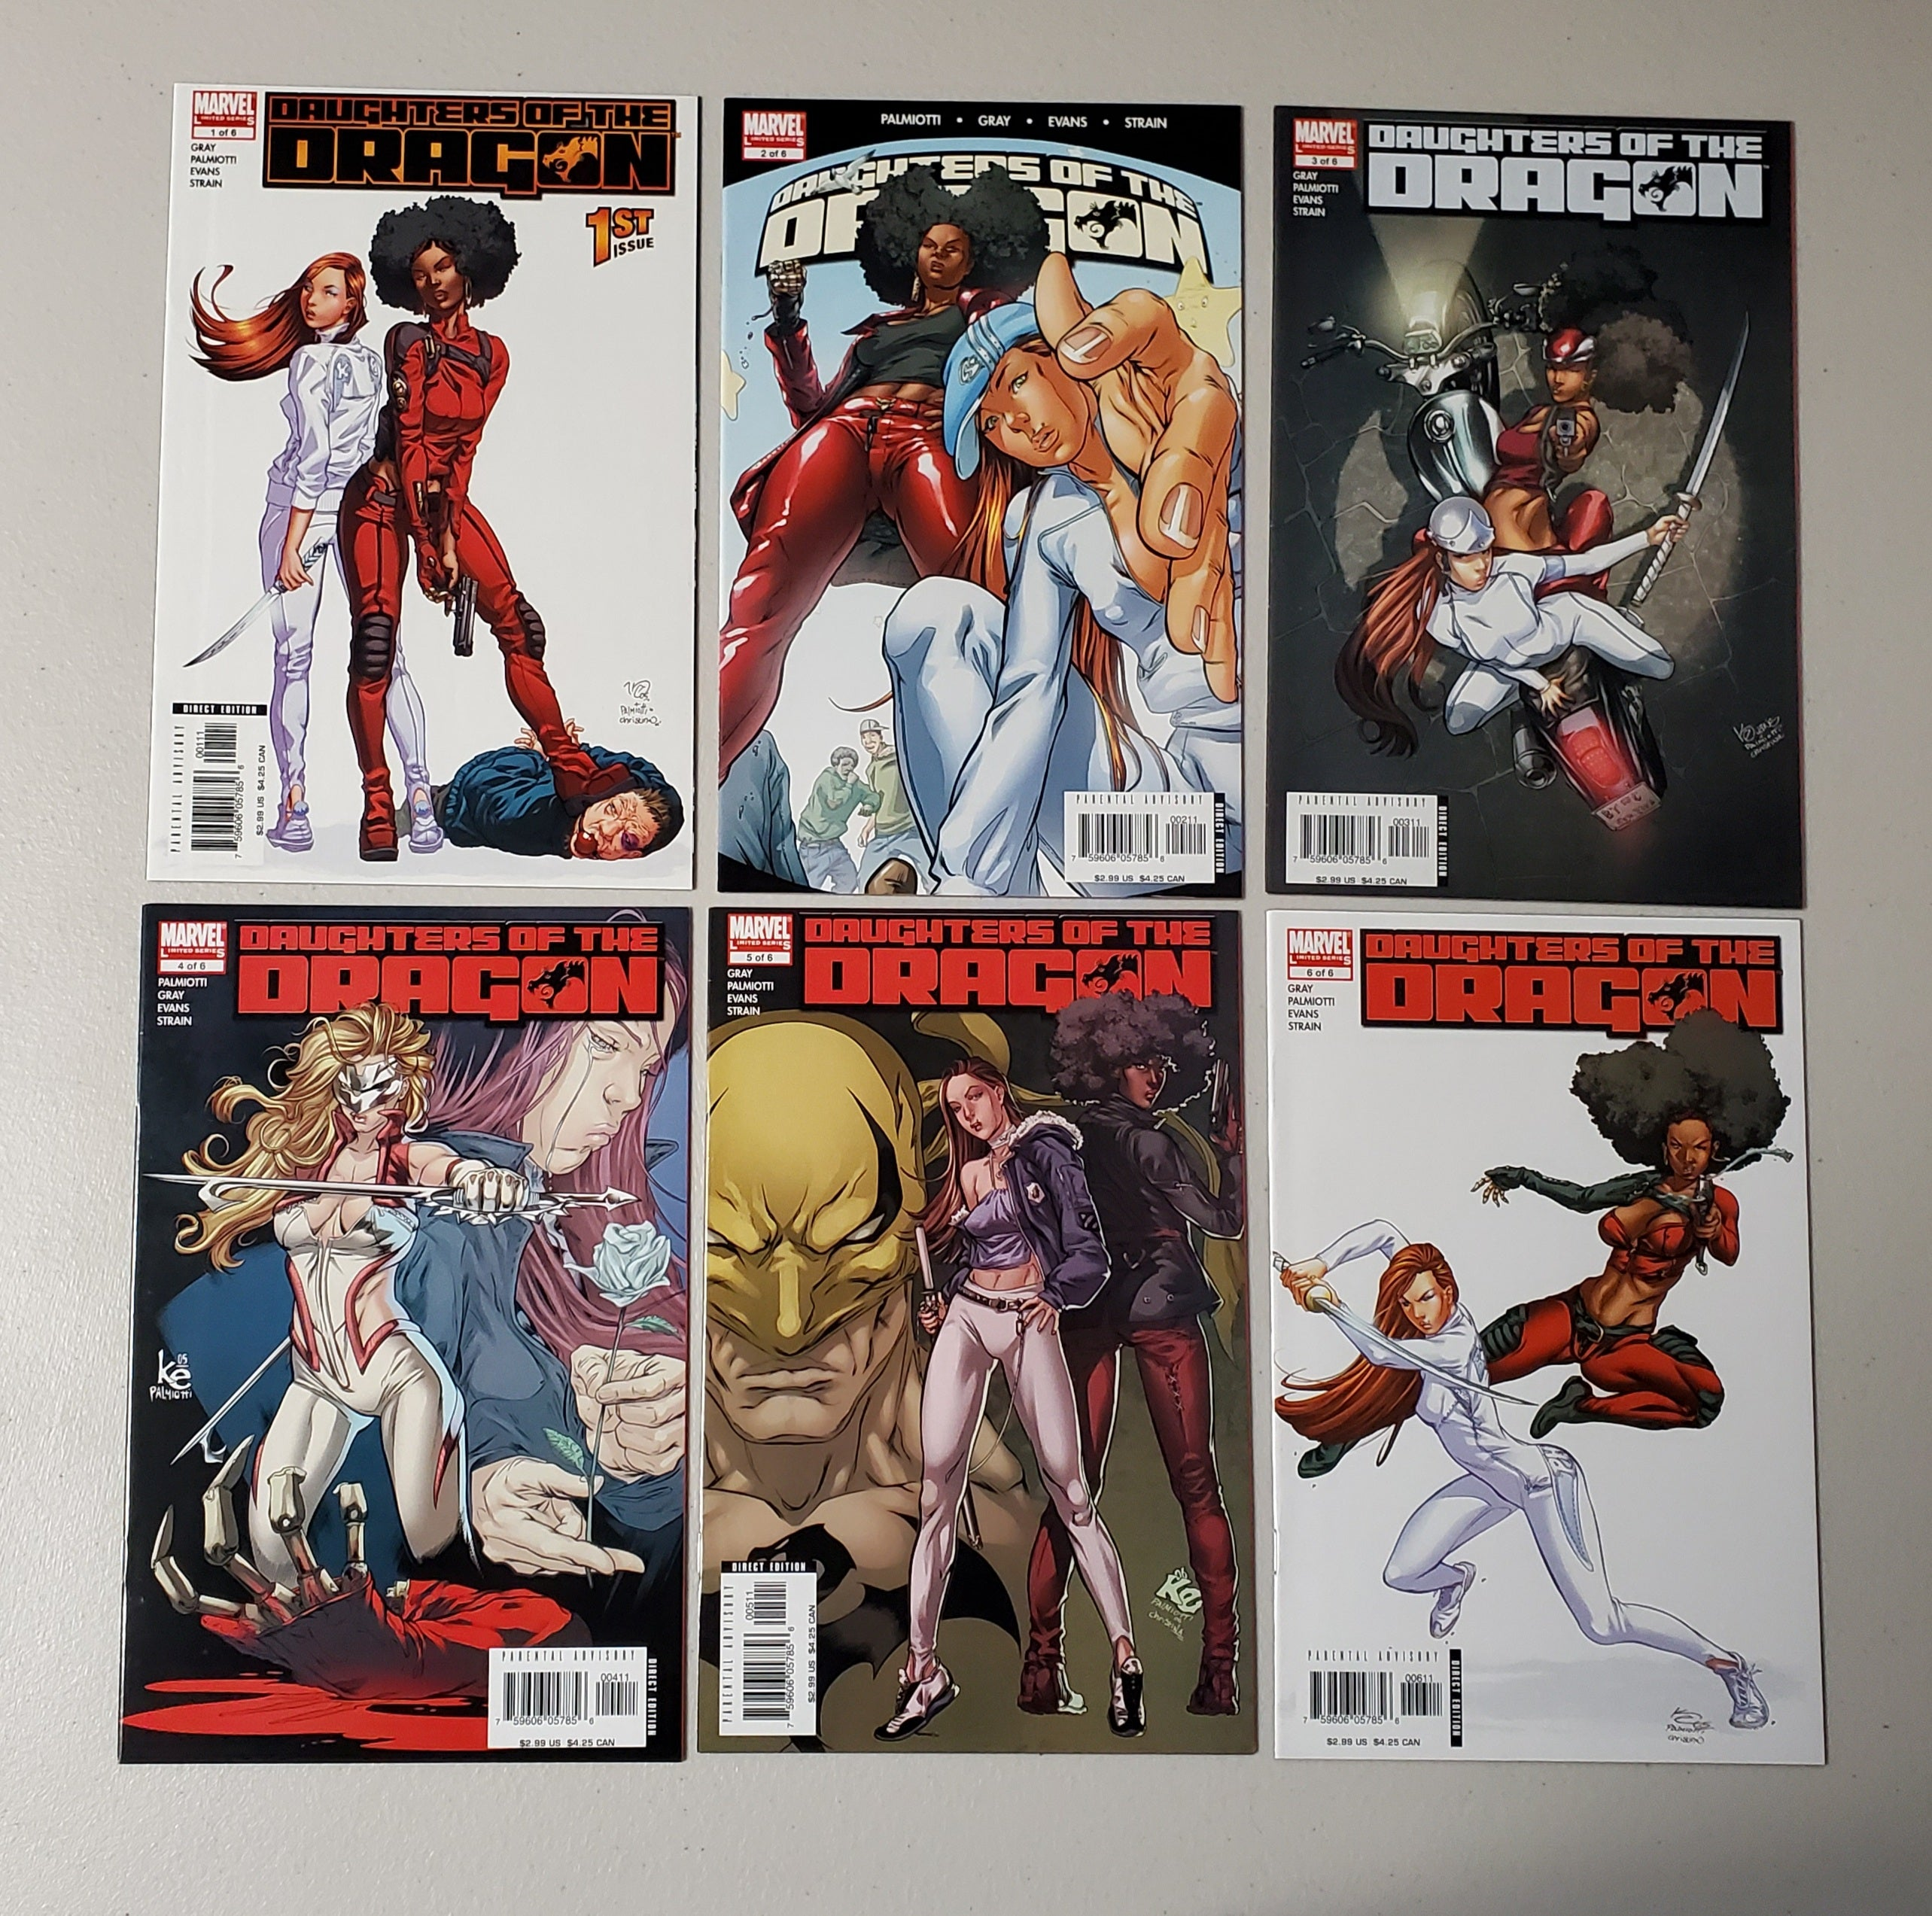 DAUGHTERS OF THE DRAGON #1-#6 COMPLETE SET